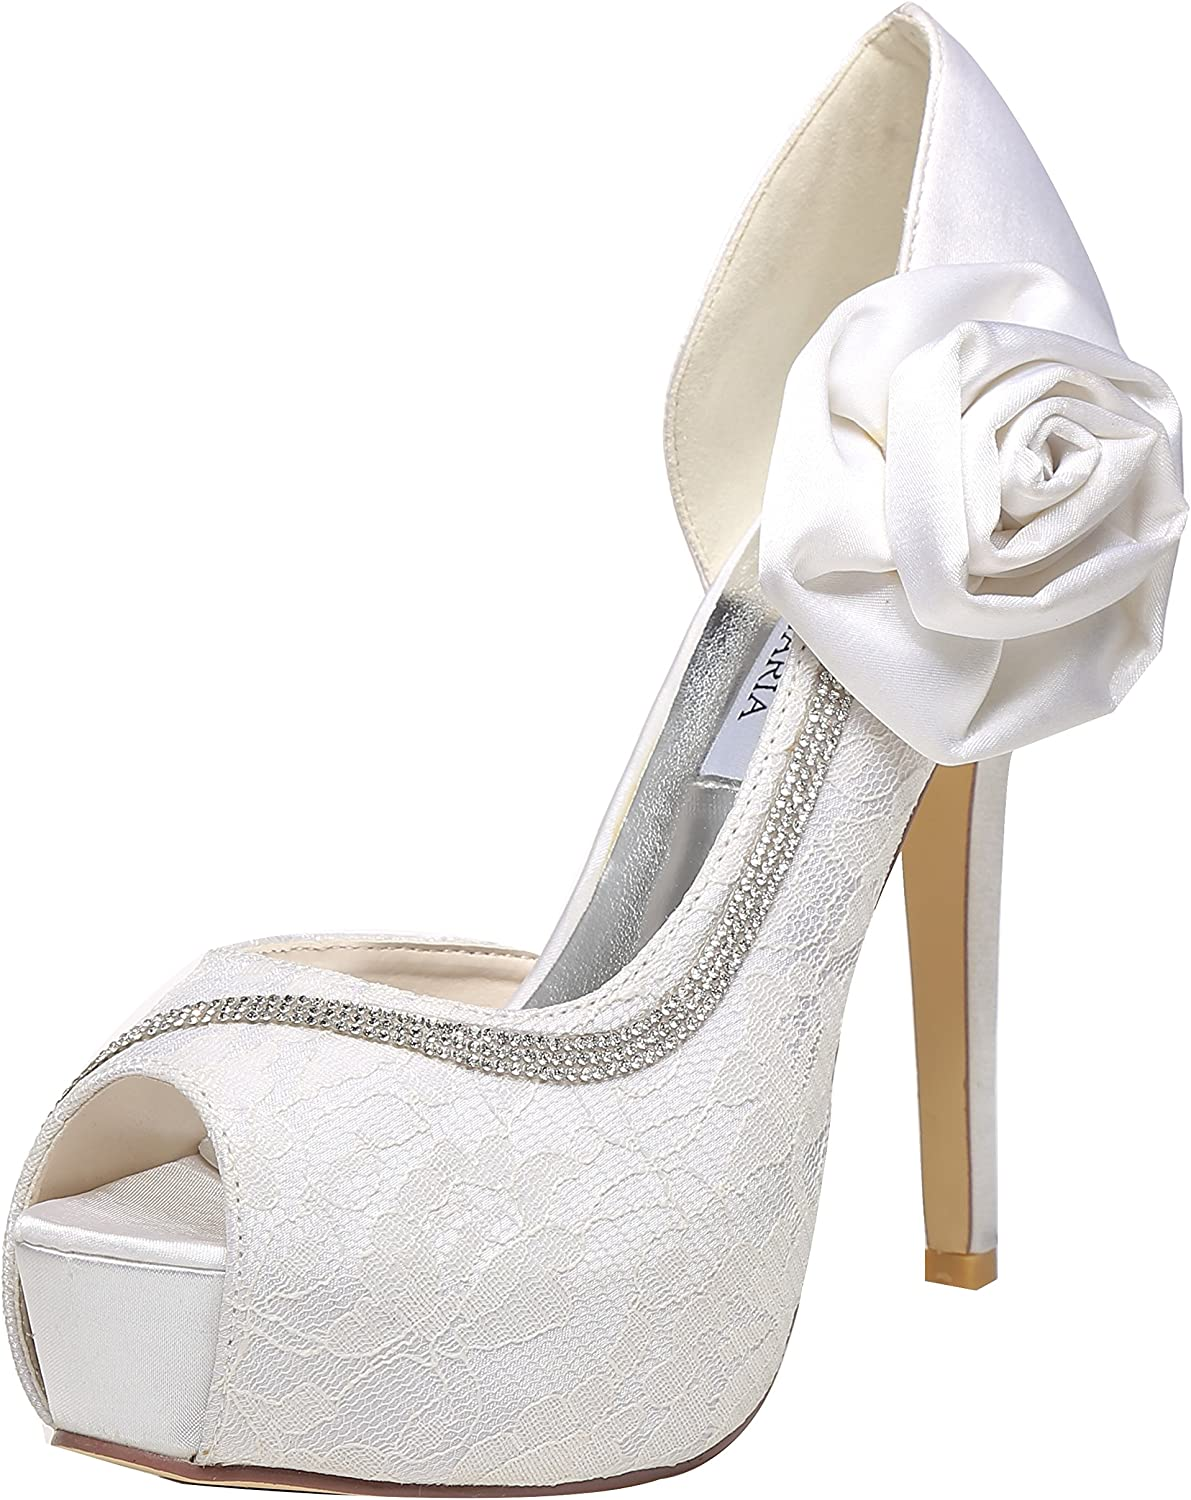 M MULGARIA Women's Peep Toe Platform Pump High Heel D'Orsay Flowers Lace Wedding Bridal Rhinestone shoes